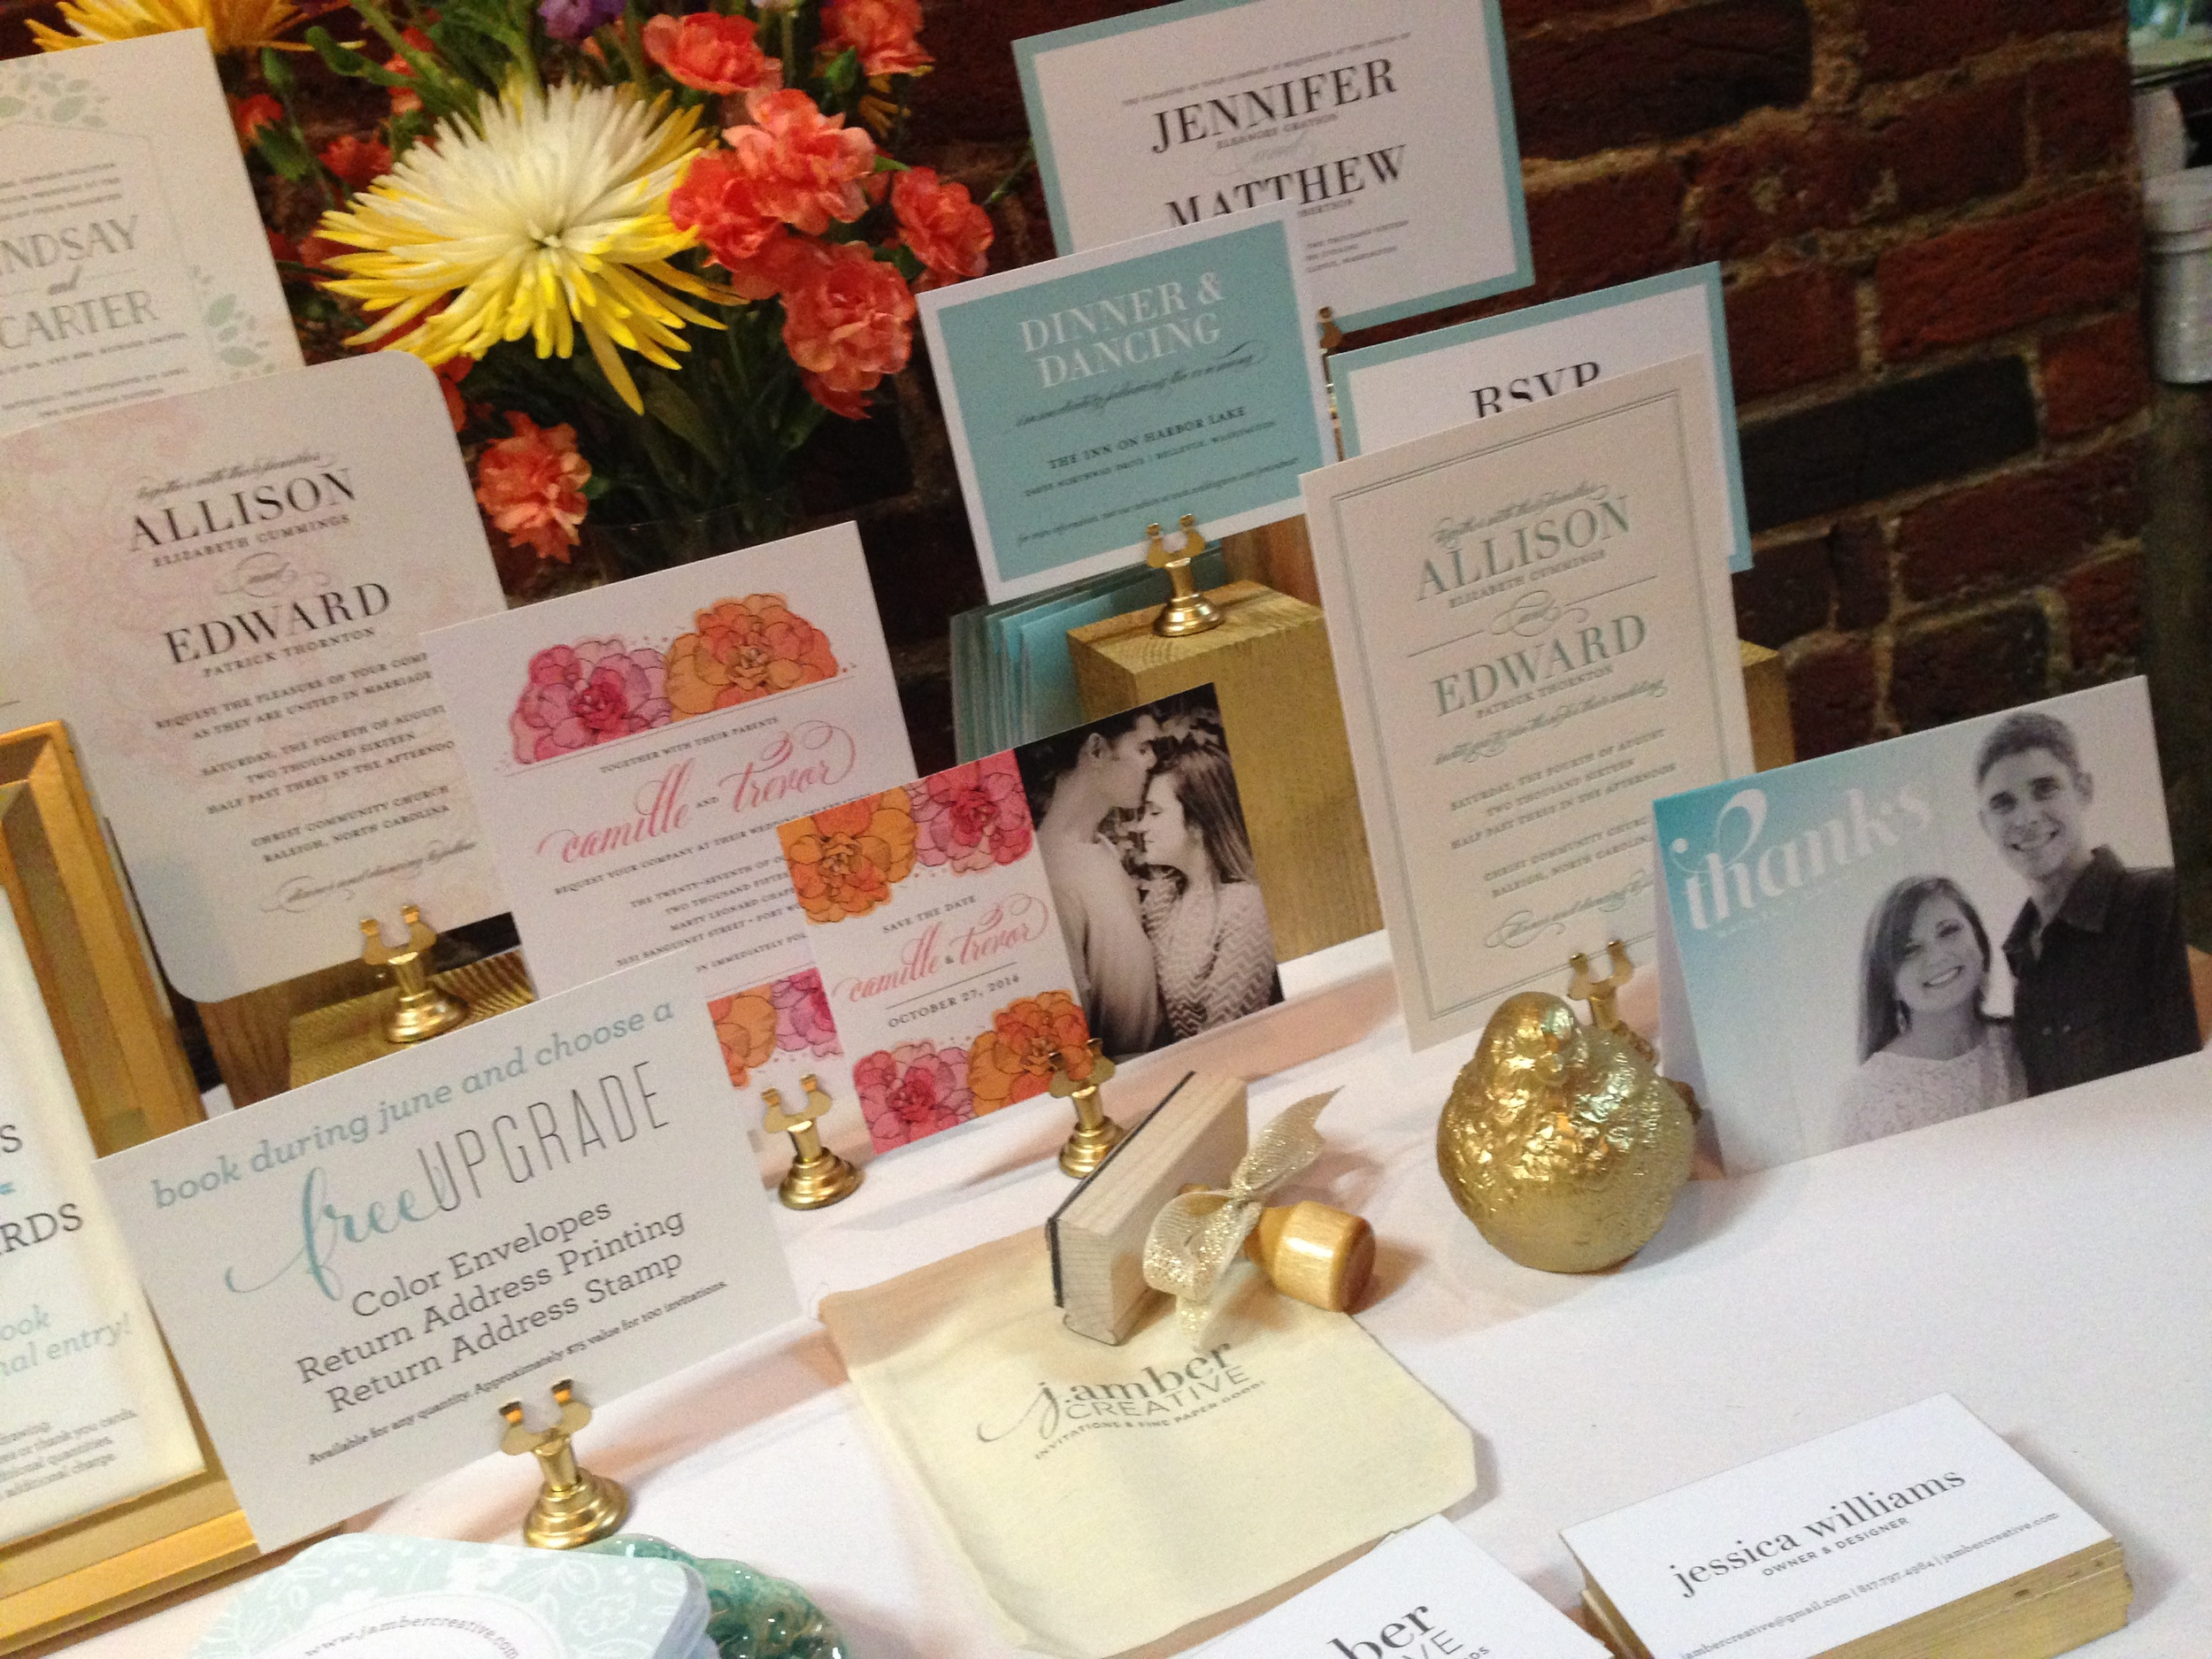 Some details of my table. Those gold edge-painted business cards were quite the show-stealer.